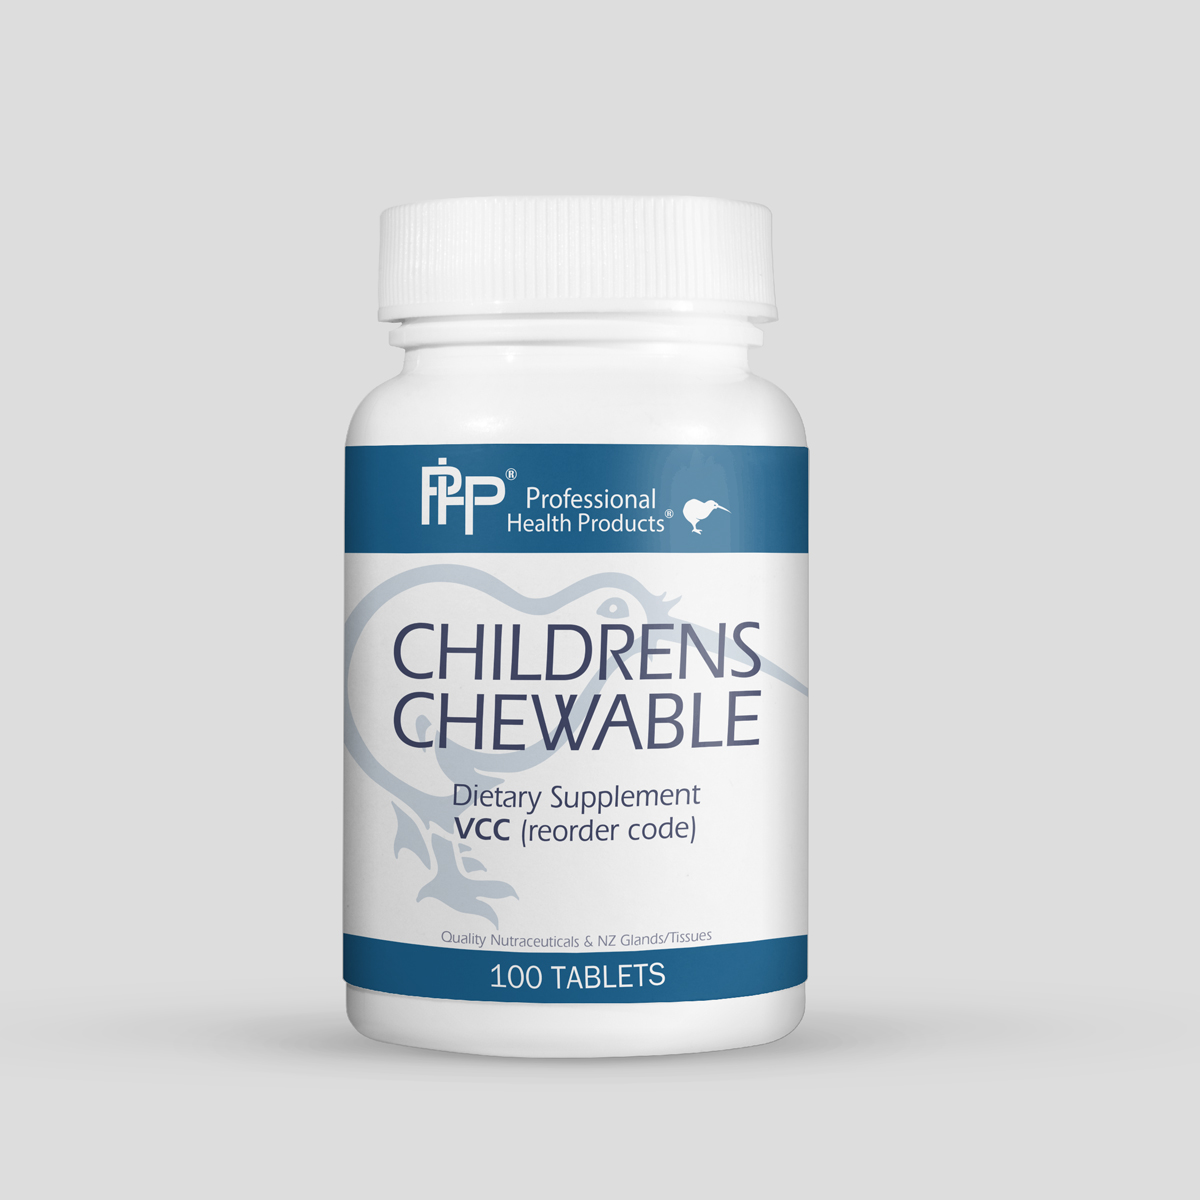 Children's Chewable